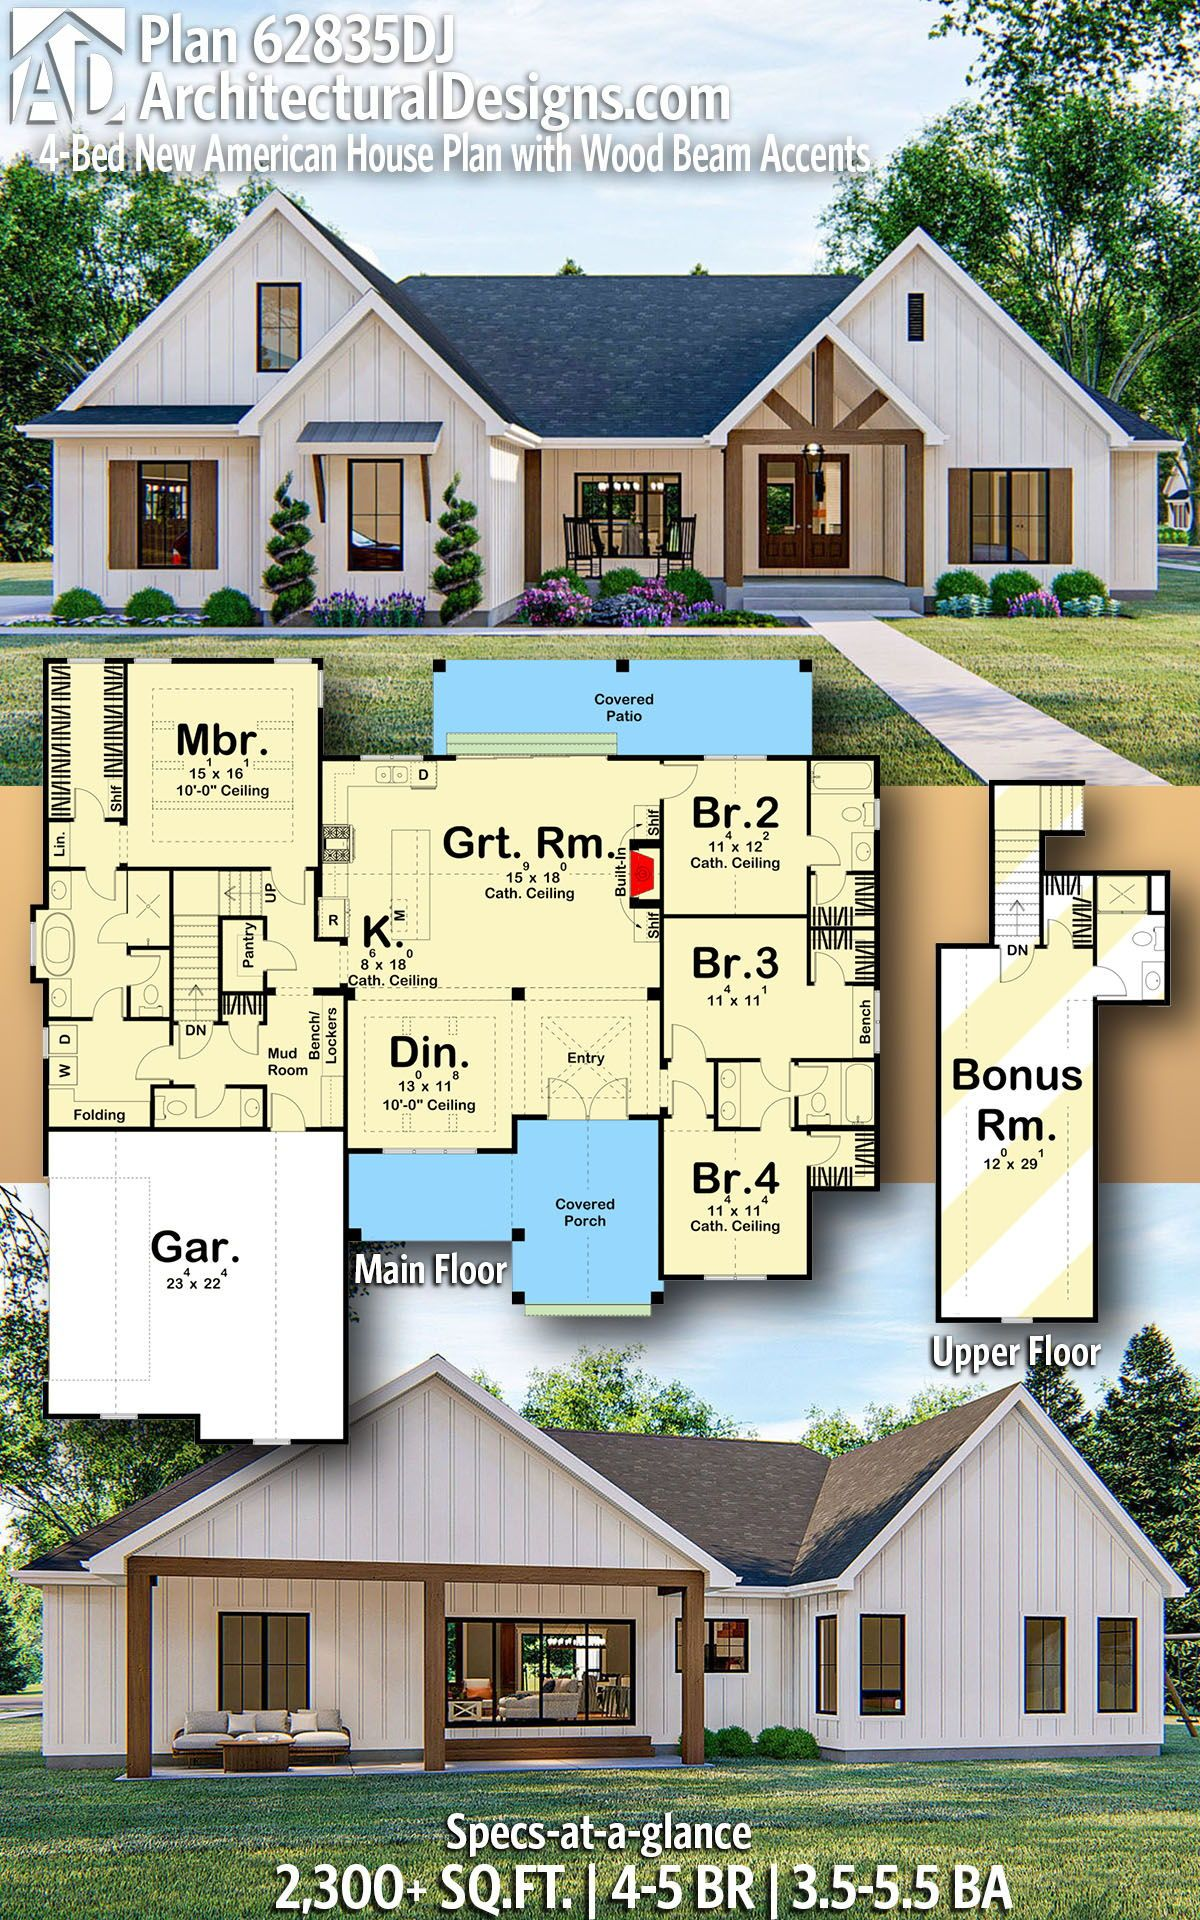 Plan 62835dj 4 Bed New American House Plan With Wood Beam Accents In 2020 Architectural Design House Plans House Plans Dream House Plans